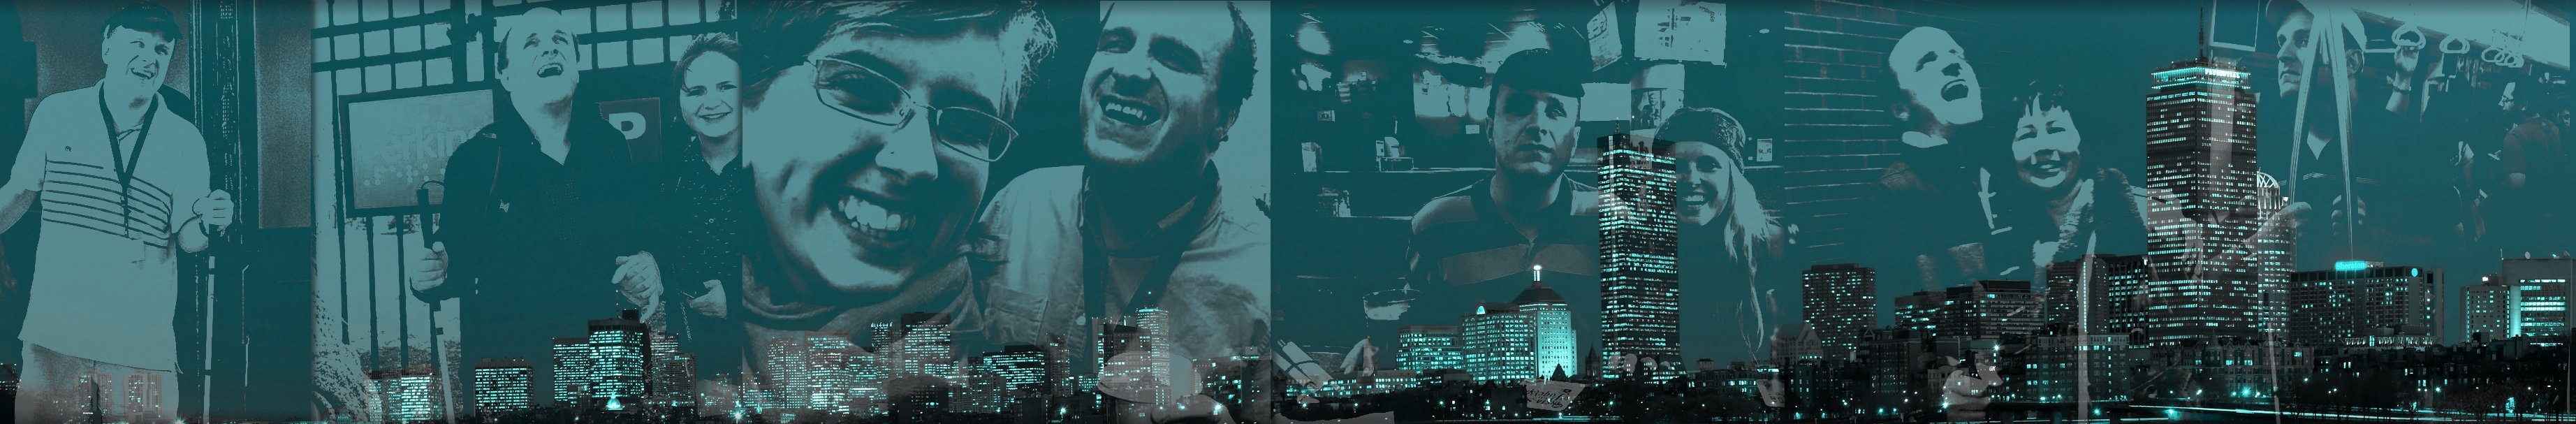 ianperrault.com header image which features a collage of photos of Ian Perrault with friends blended into the Boston skyline.